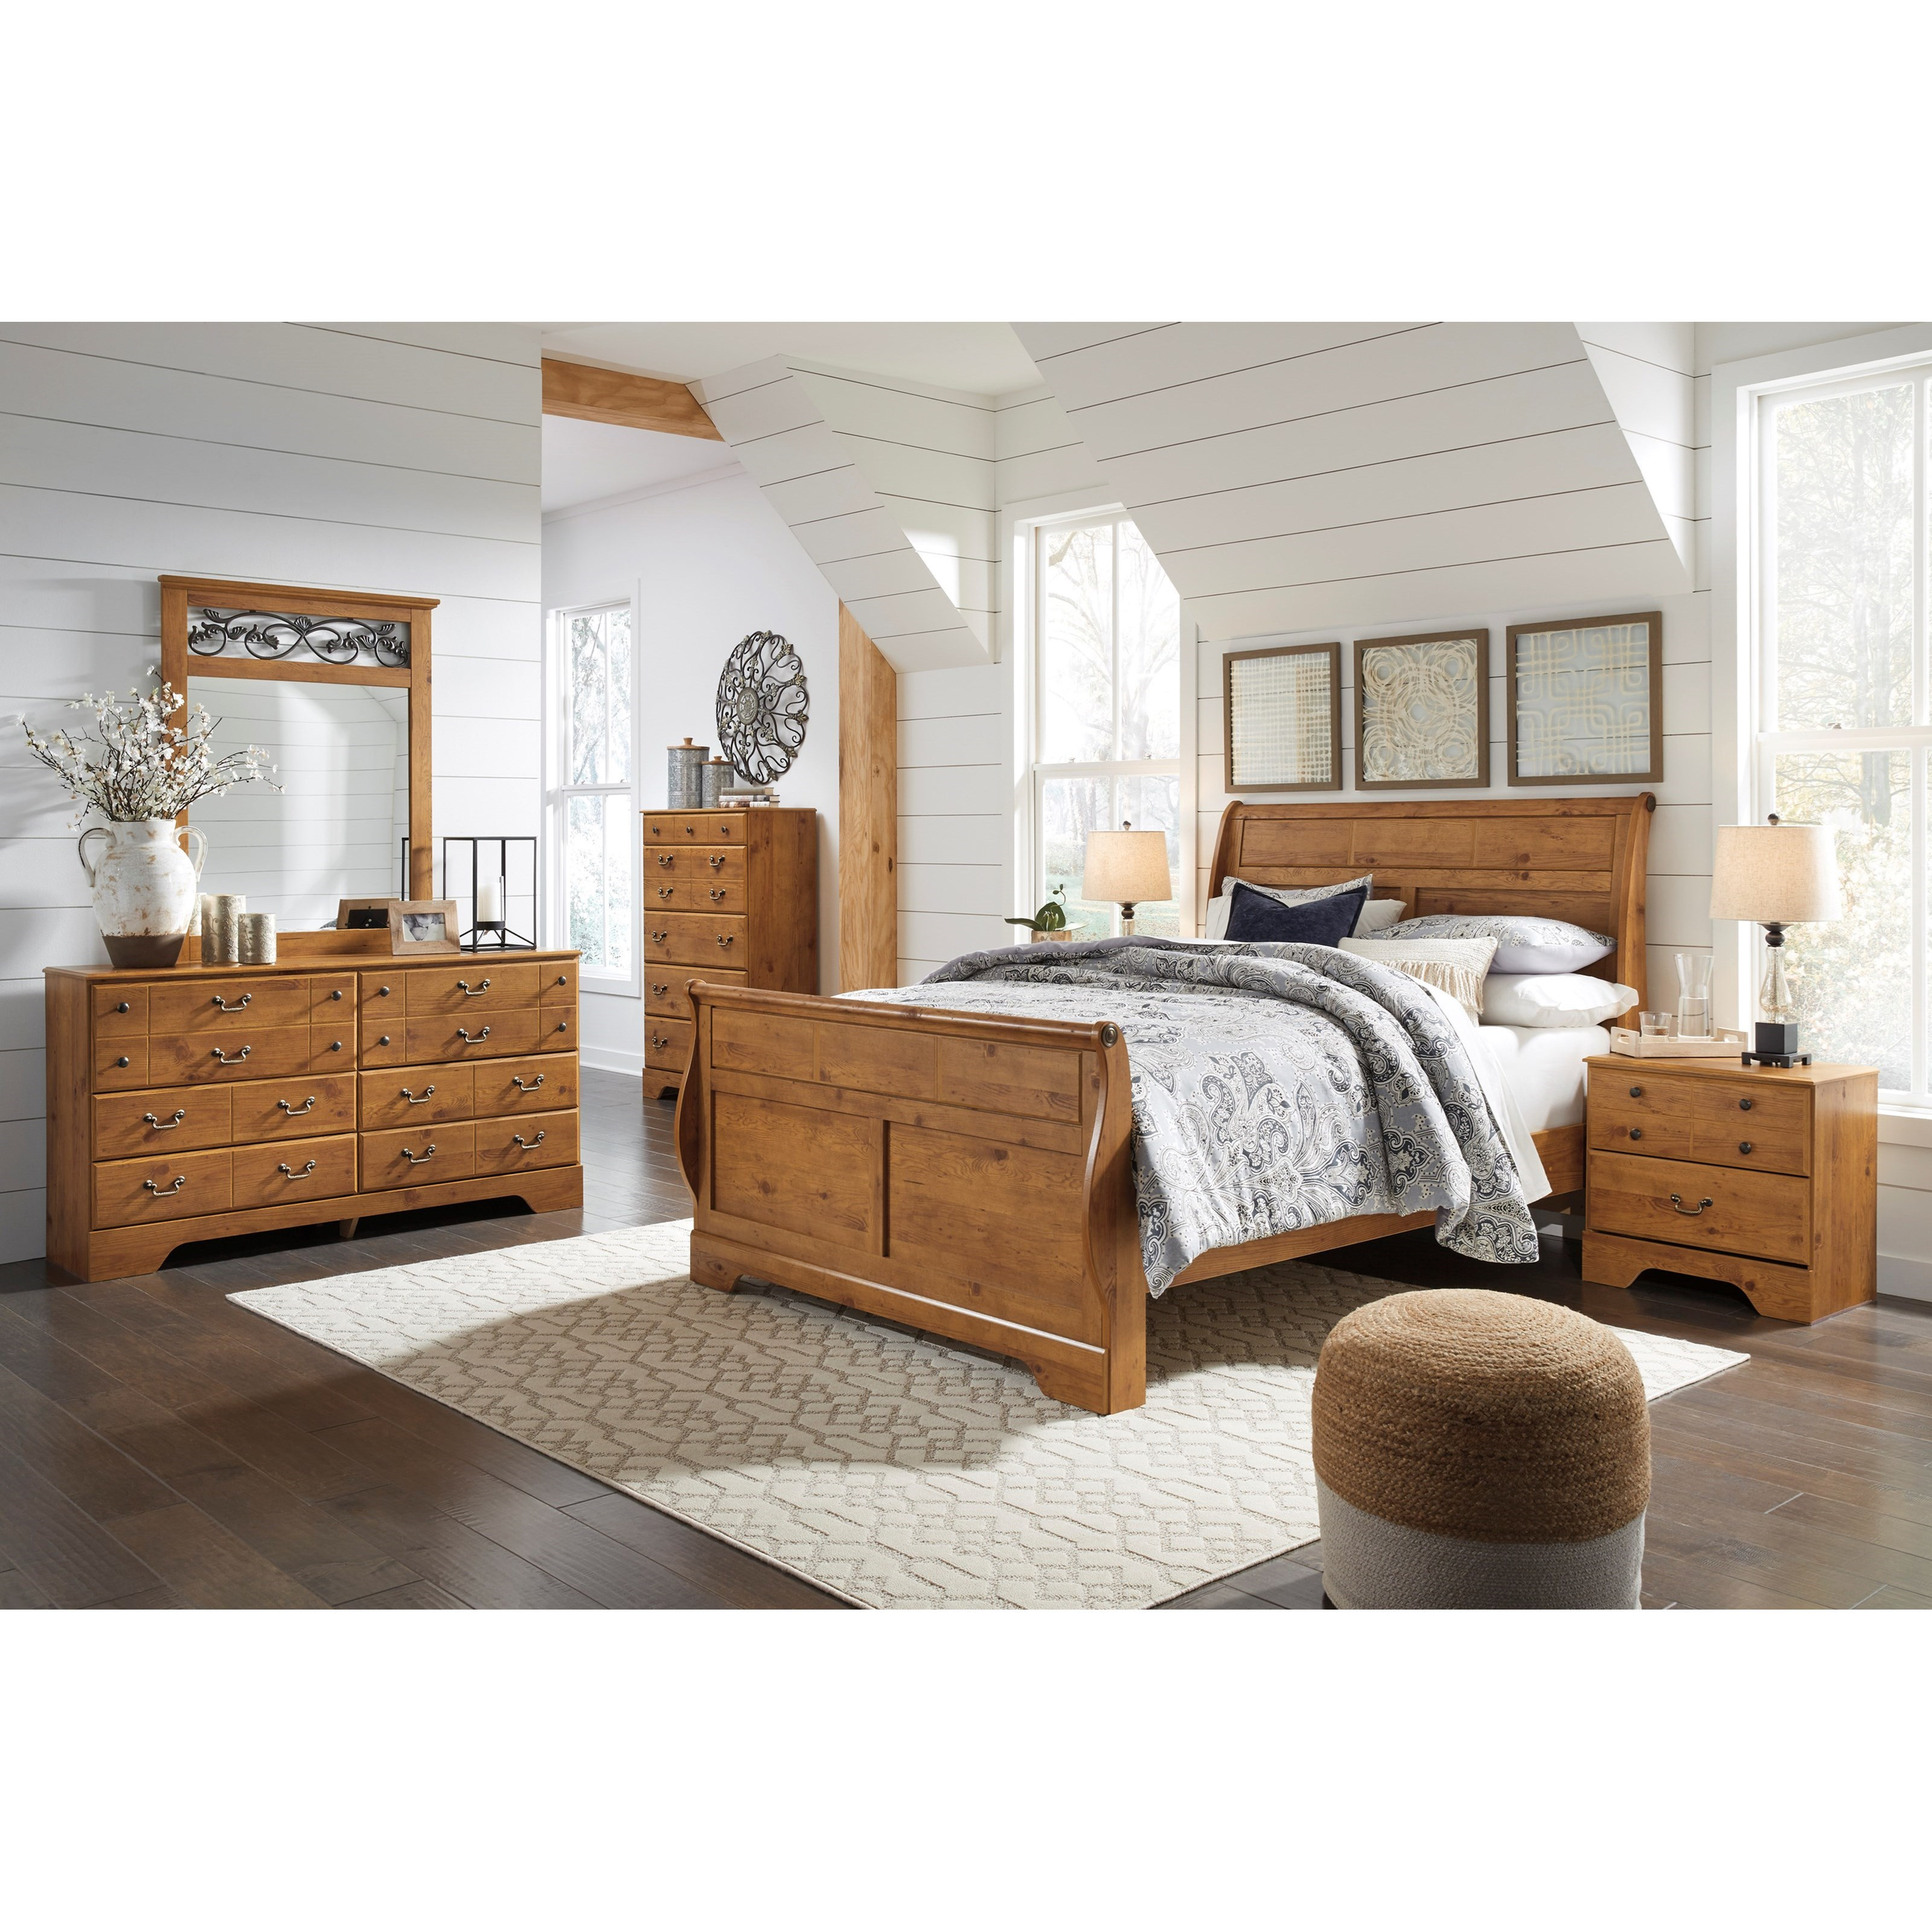 Bittersweet King Sleigh Bedroom Group by Signature Design by Ashley at Northeast Factory Direct